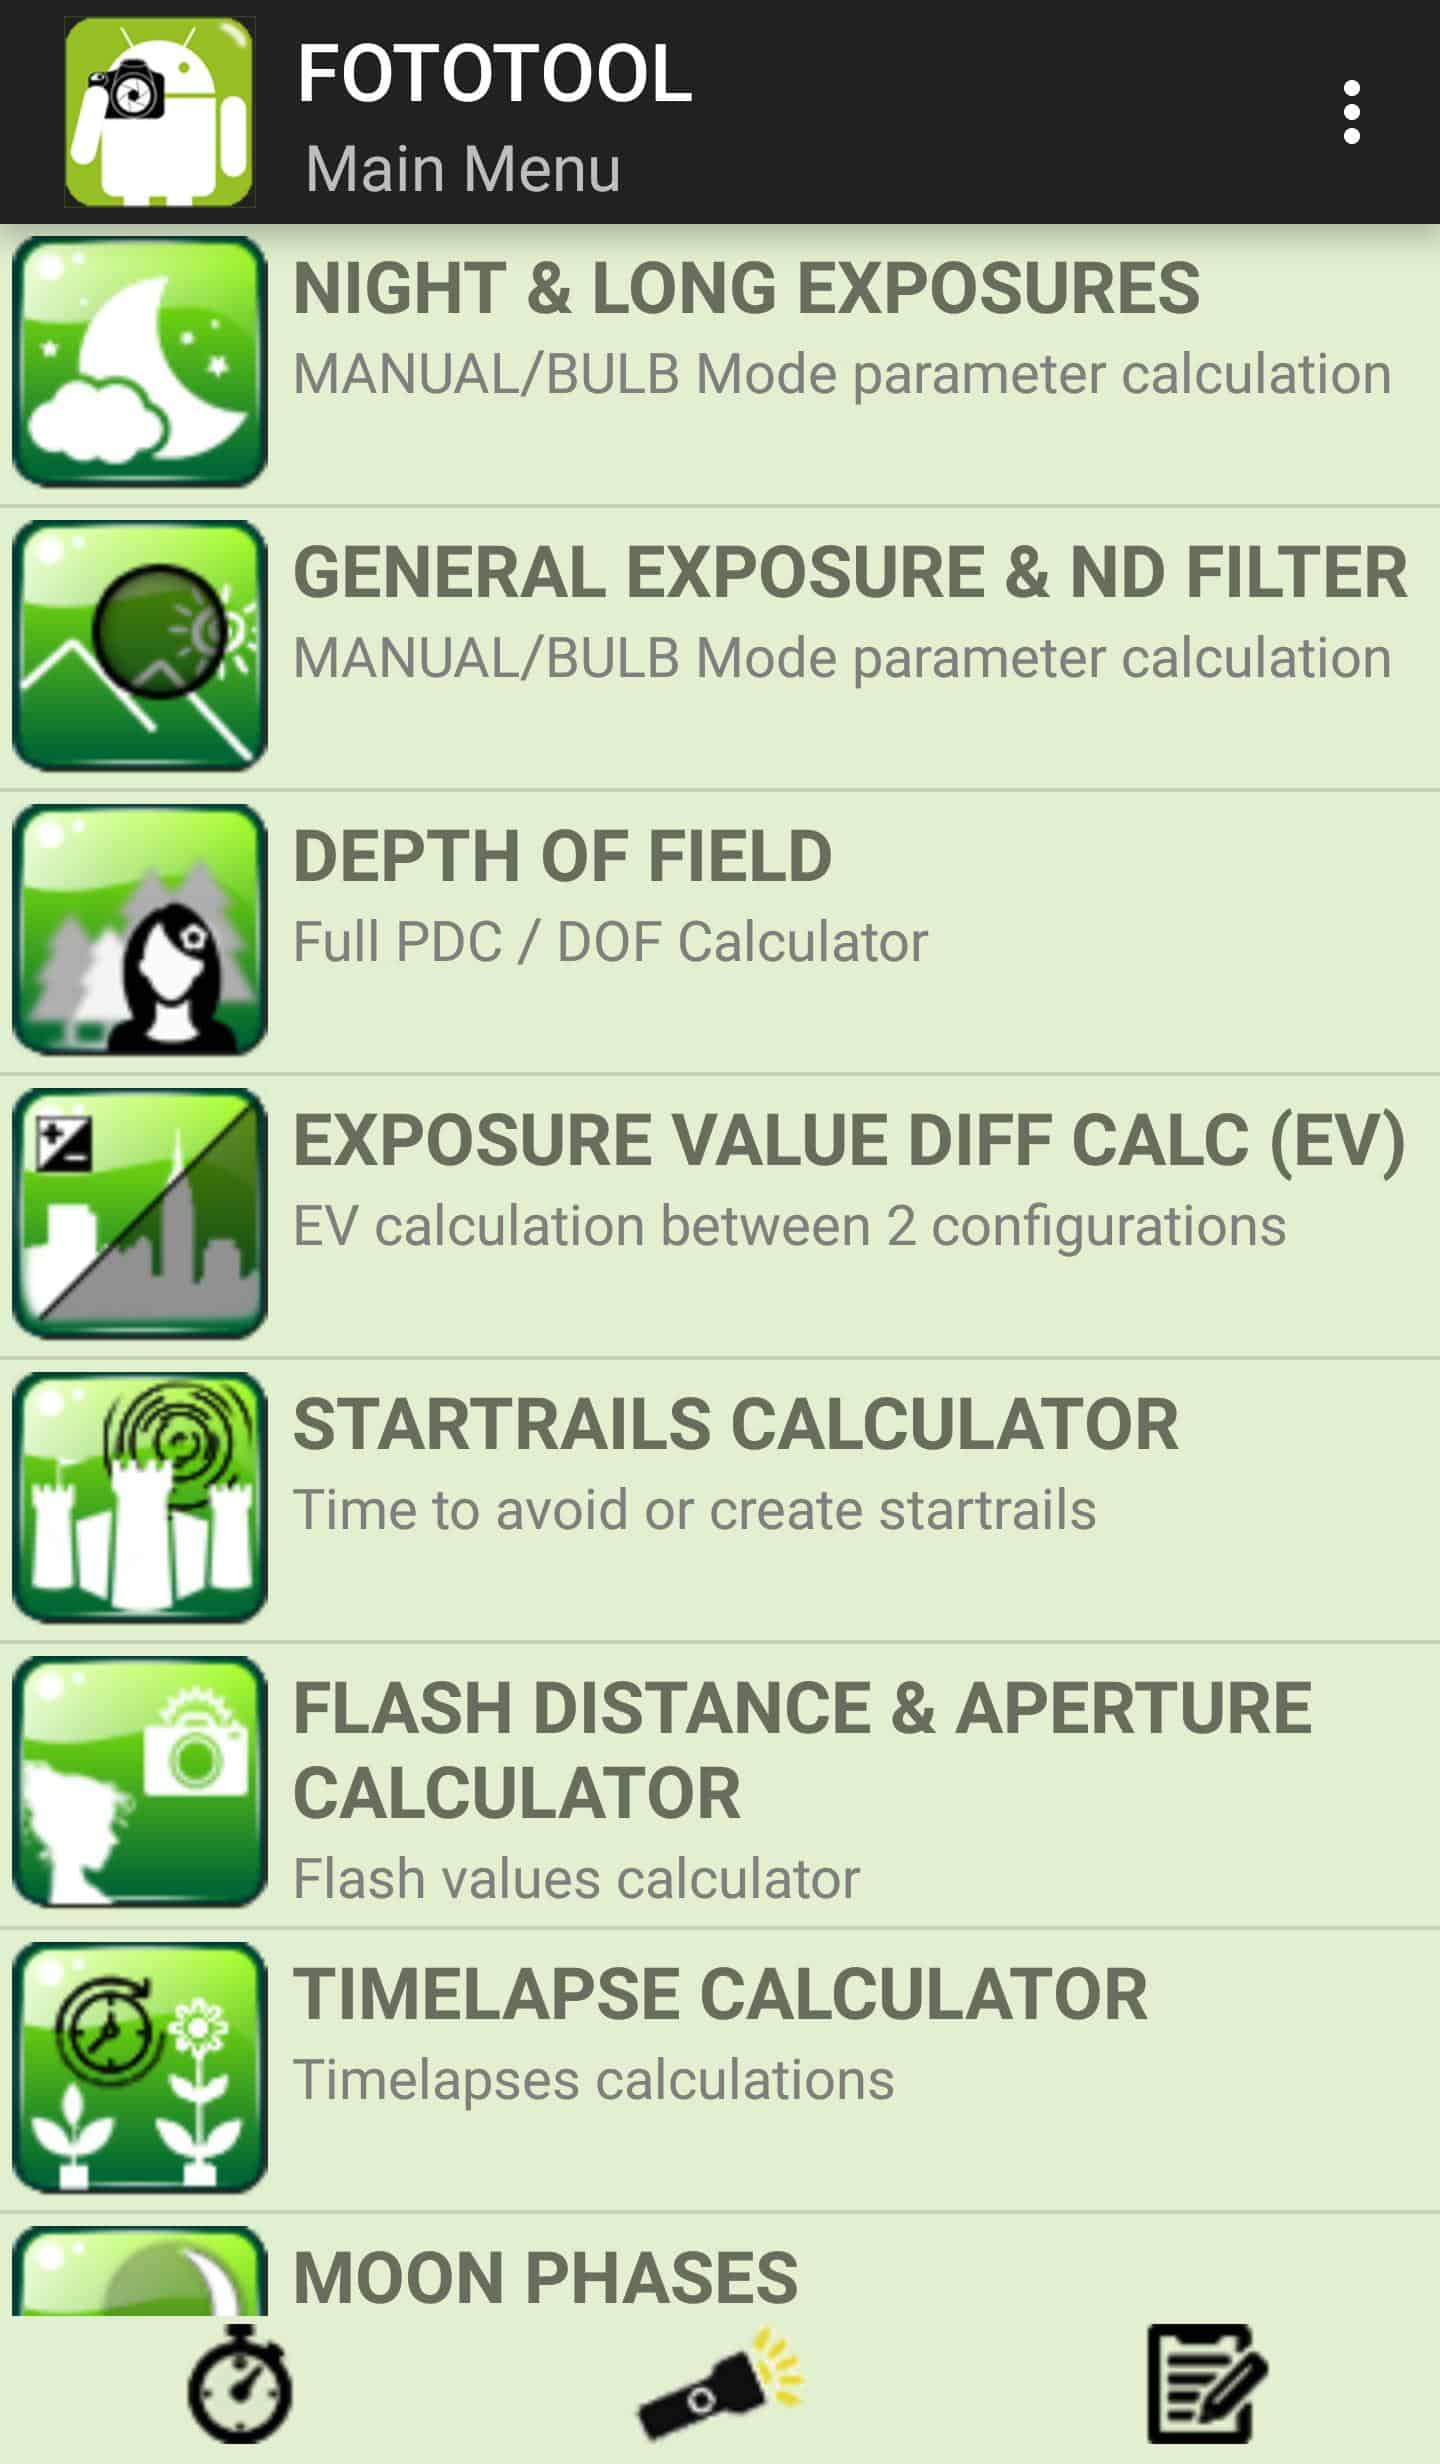 FotoTool - Photographer Tools Android App Review